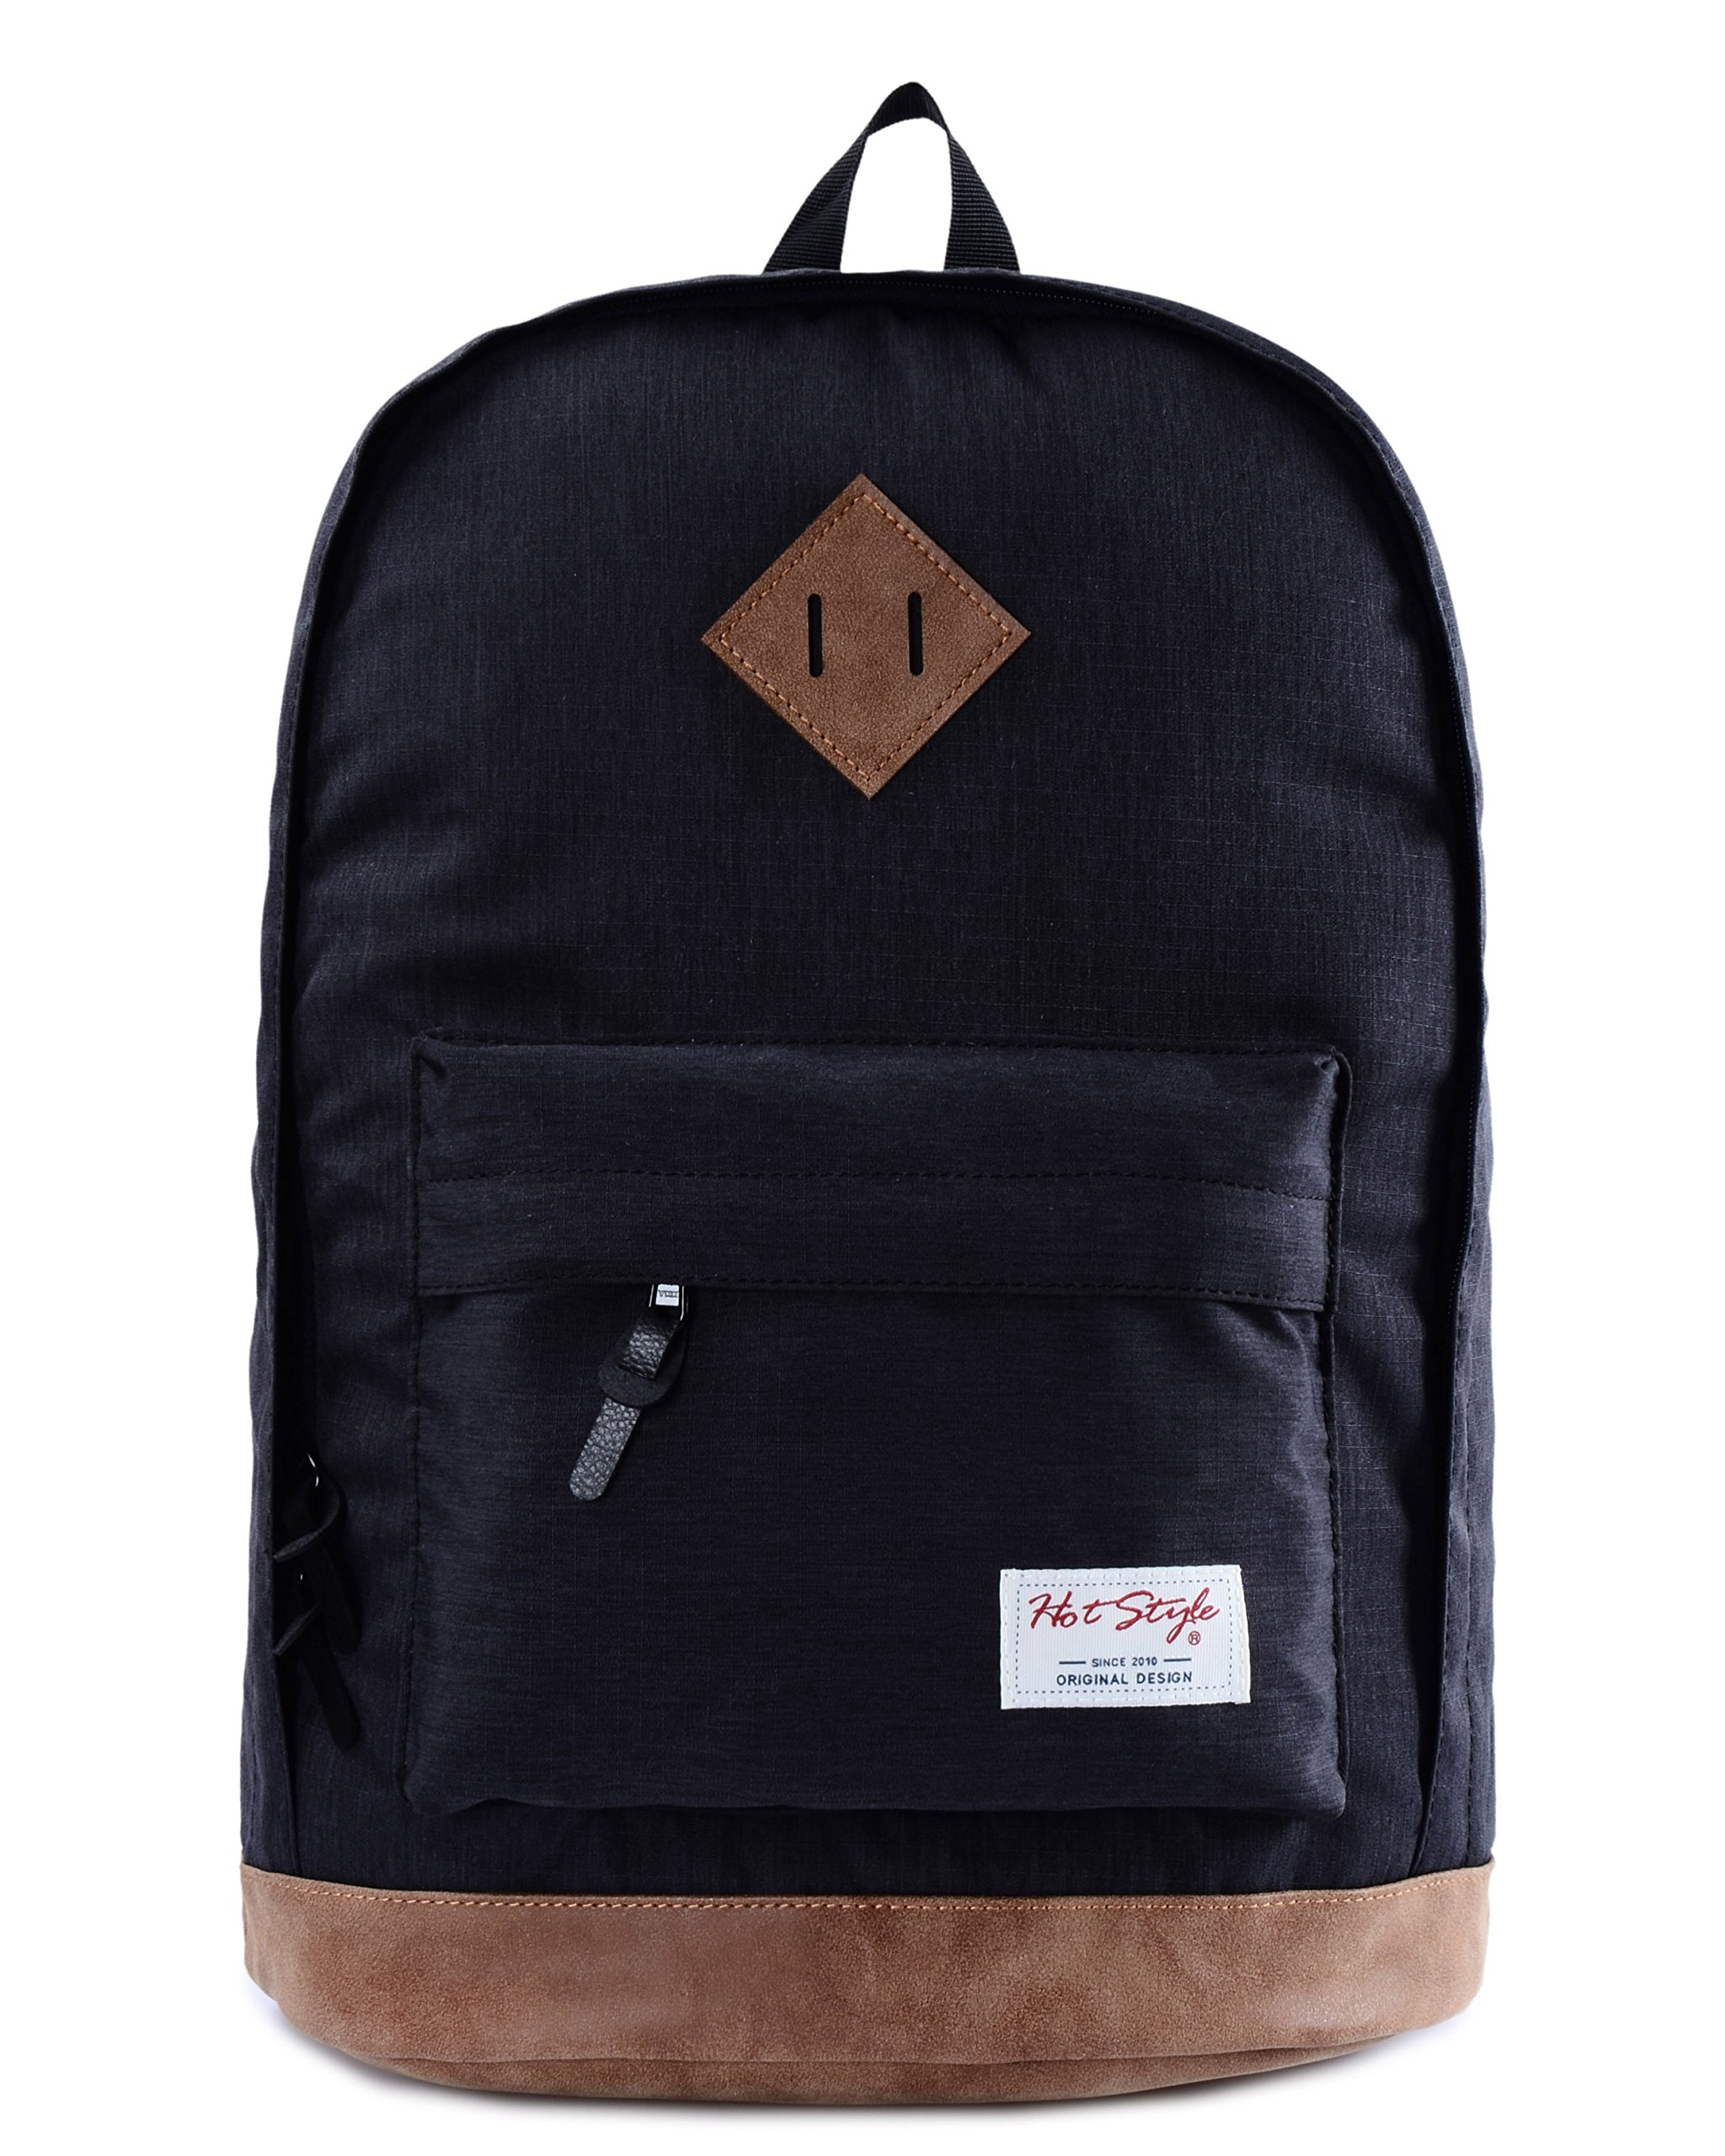 936Plus College School Backpack Travel Rucksack | Fits 15.6'' Laptop | 18''x12''x6'' | Black by hotstyle (Image #2)